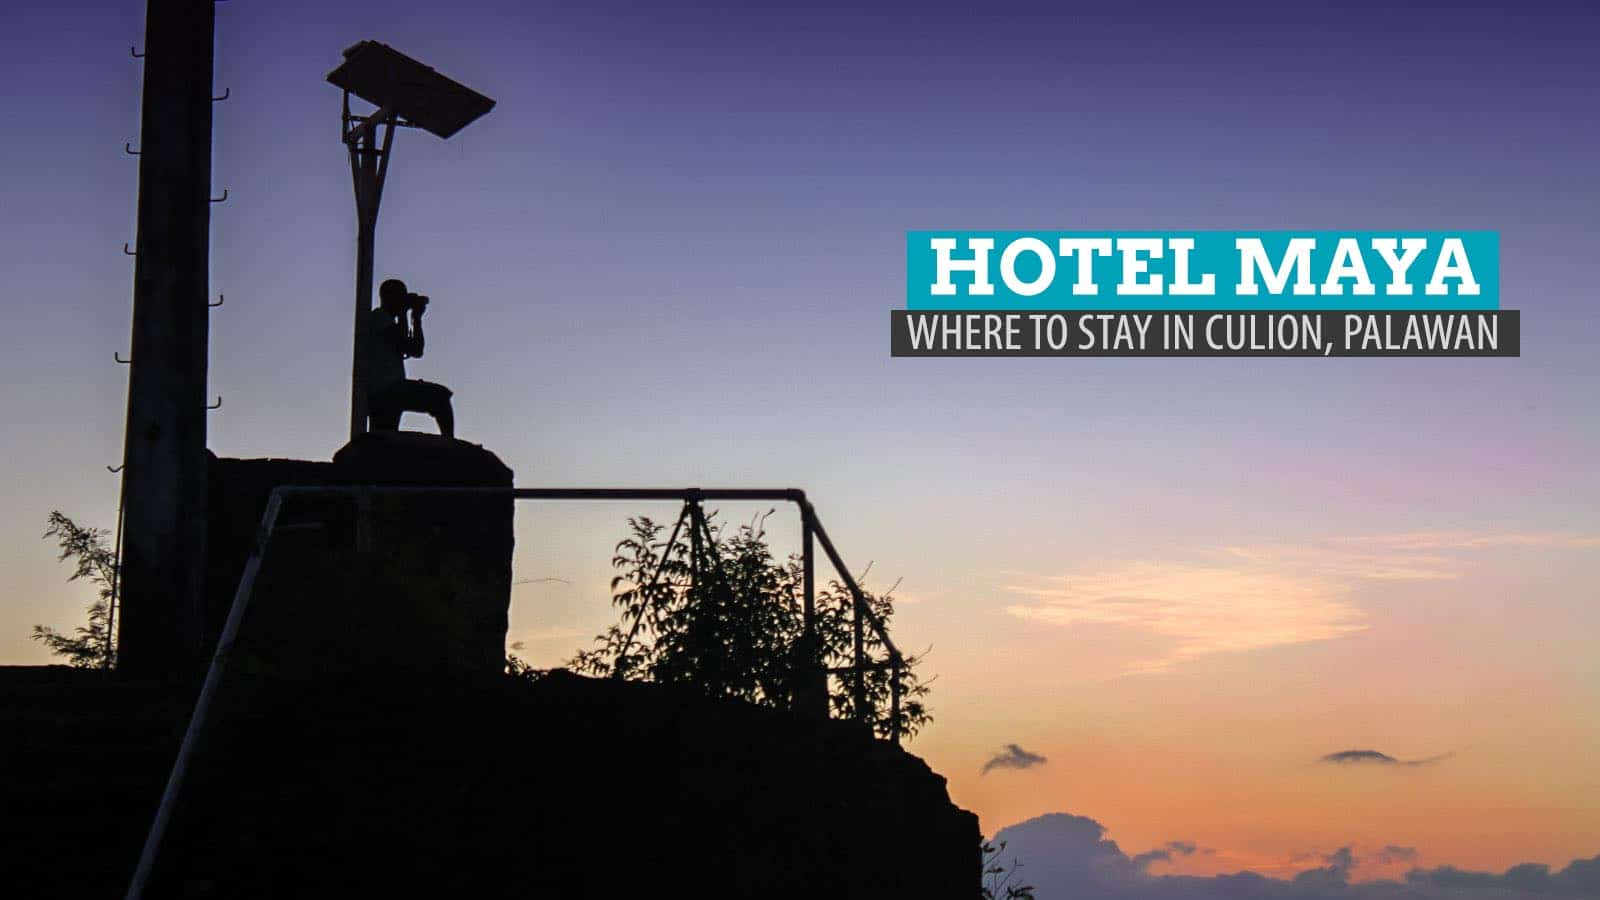 Hotel Maya: Where to Stay in Culion, Palawan, Philippines